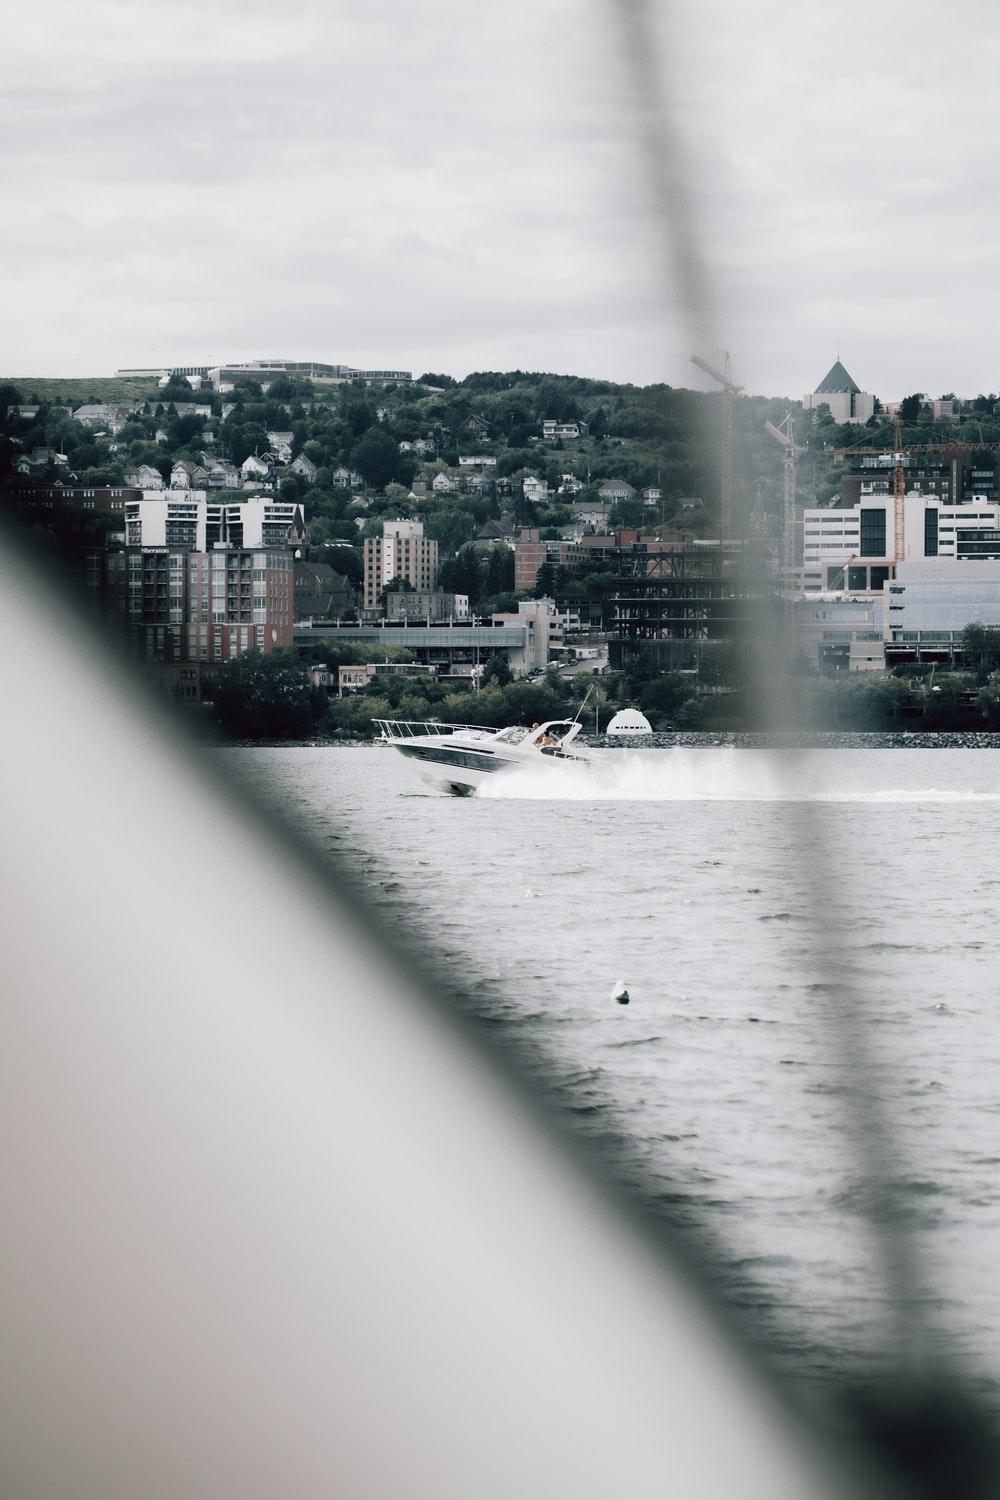 white boat on water near city buildings during daytime